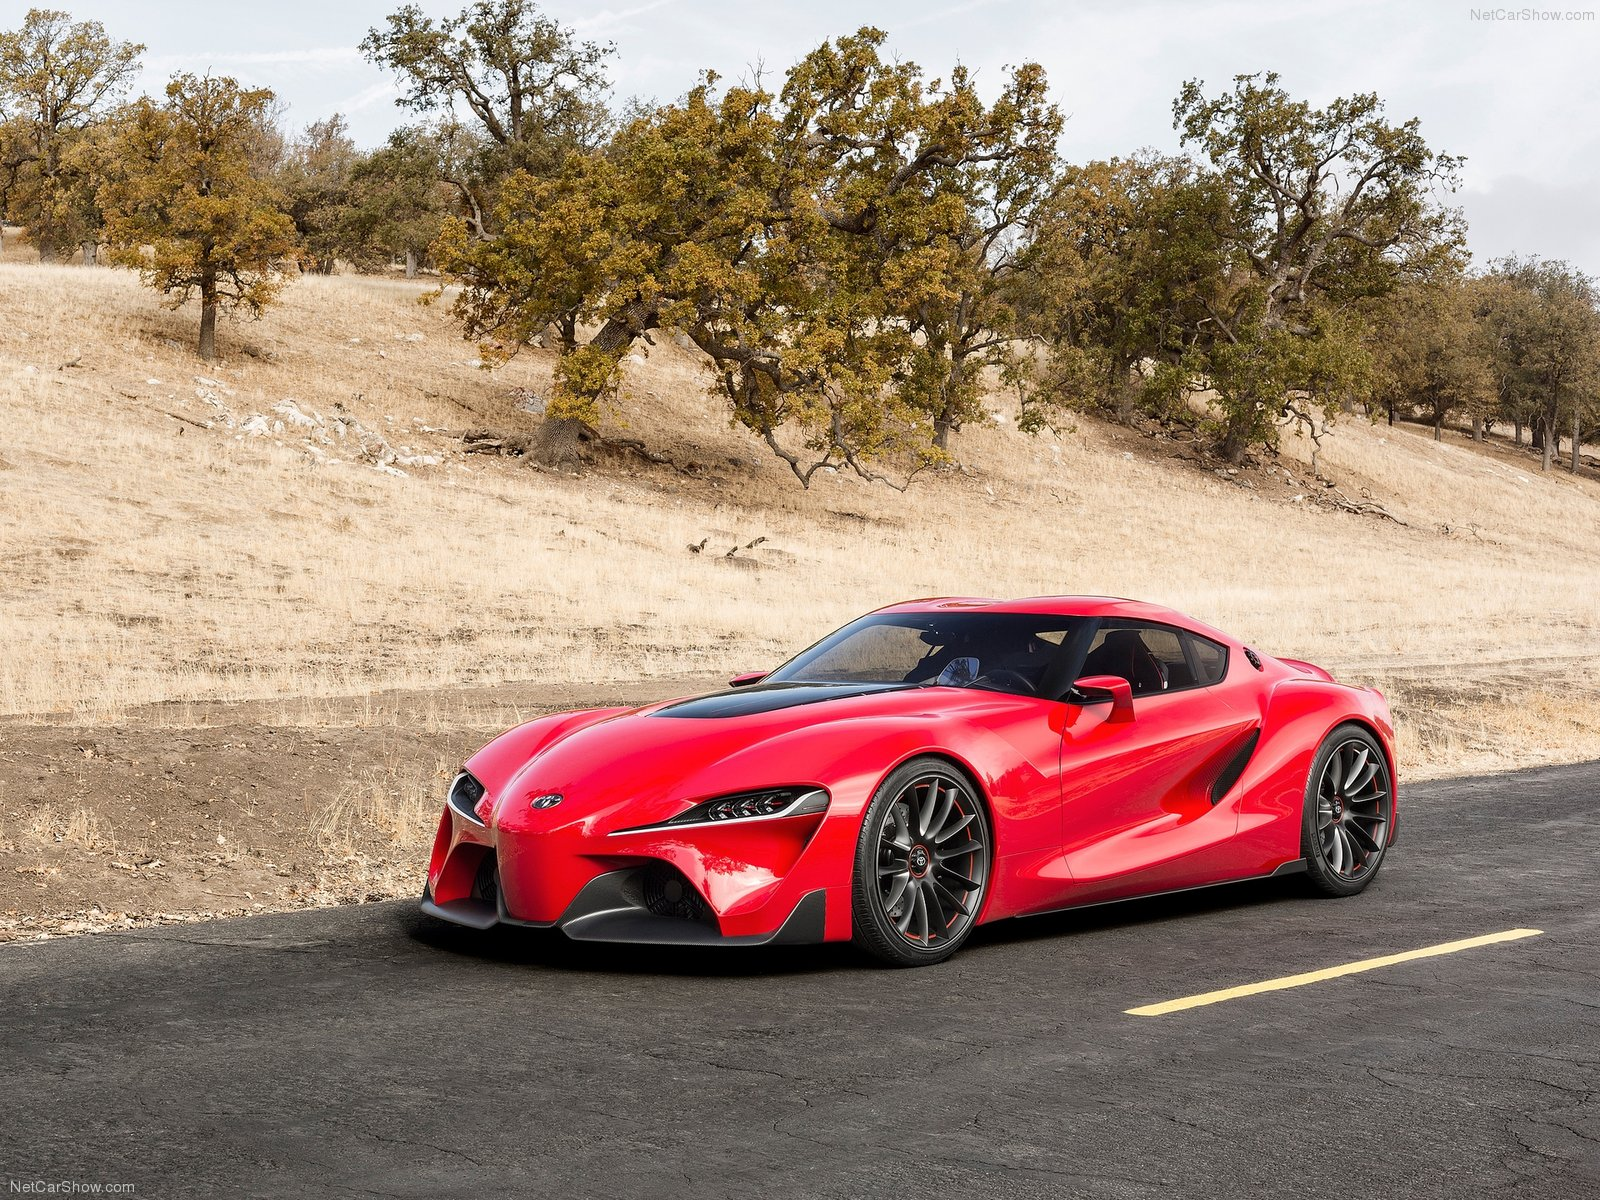 Toyota FT-1 Concept photo 106959